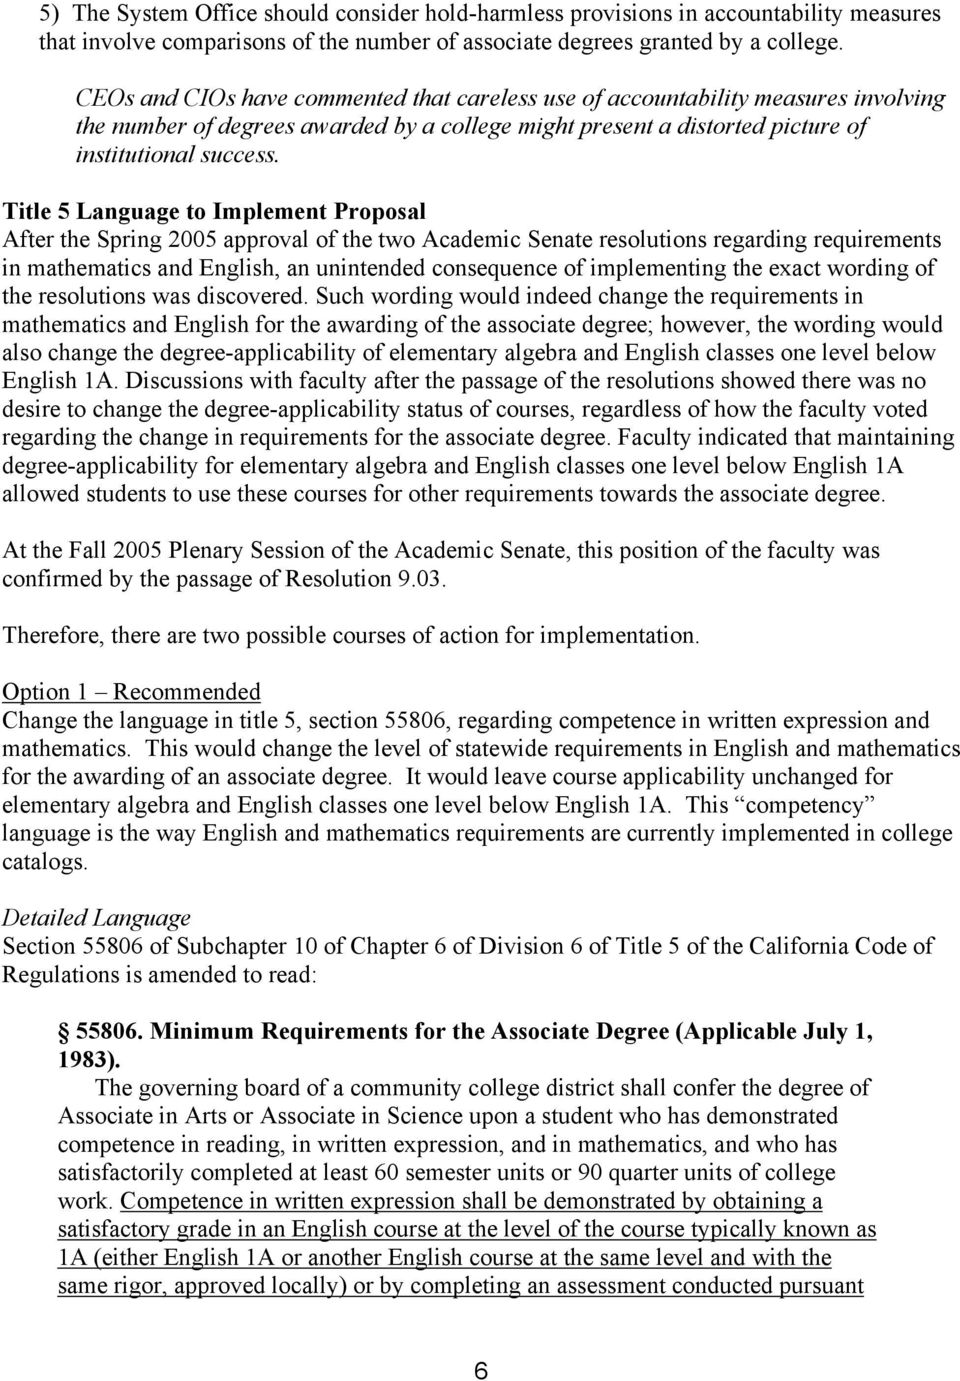 Title 5 Language to Implement Proposal After the Spring 2005 approval of the two Academic Senate resolutions regarding requirements in mathematics and English, an unintended consequence of